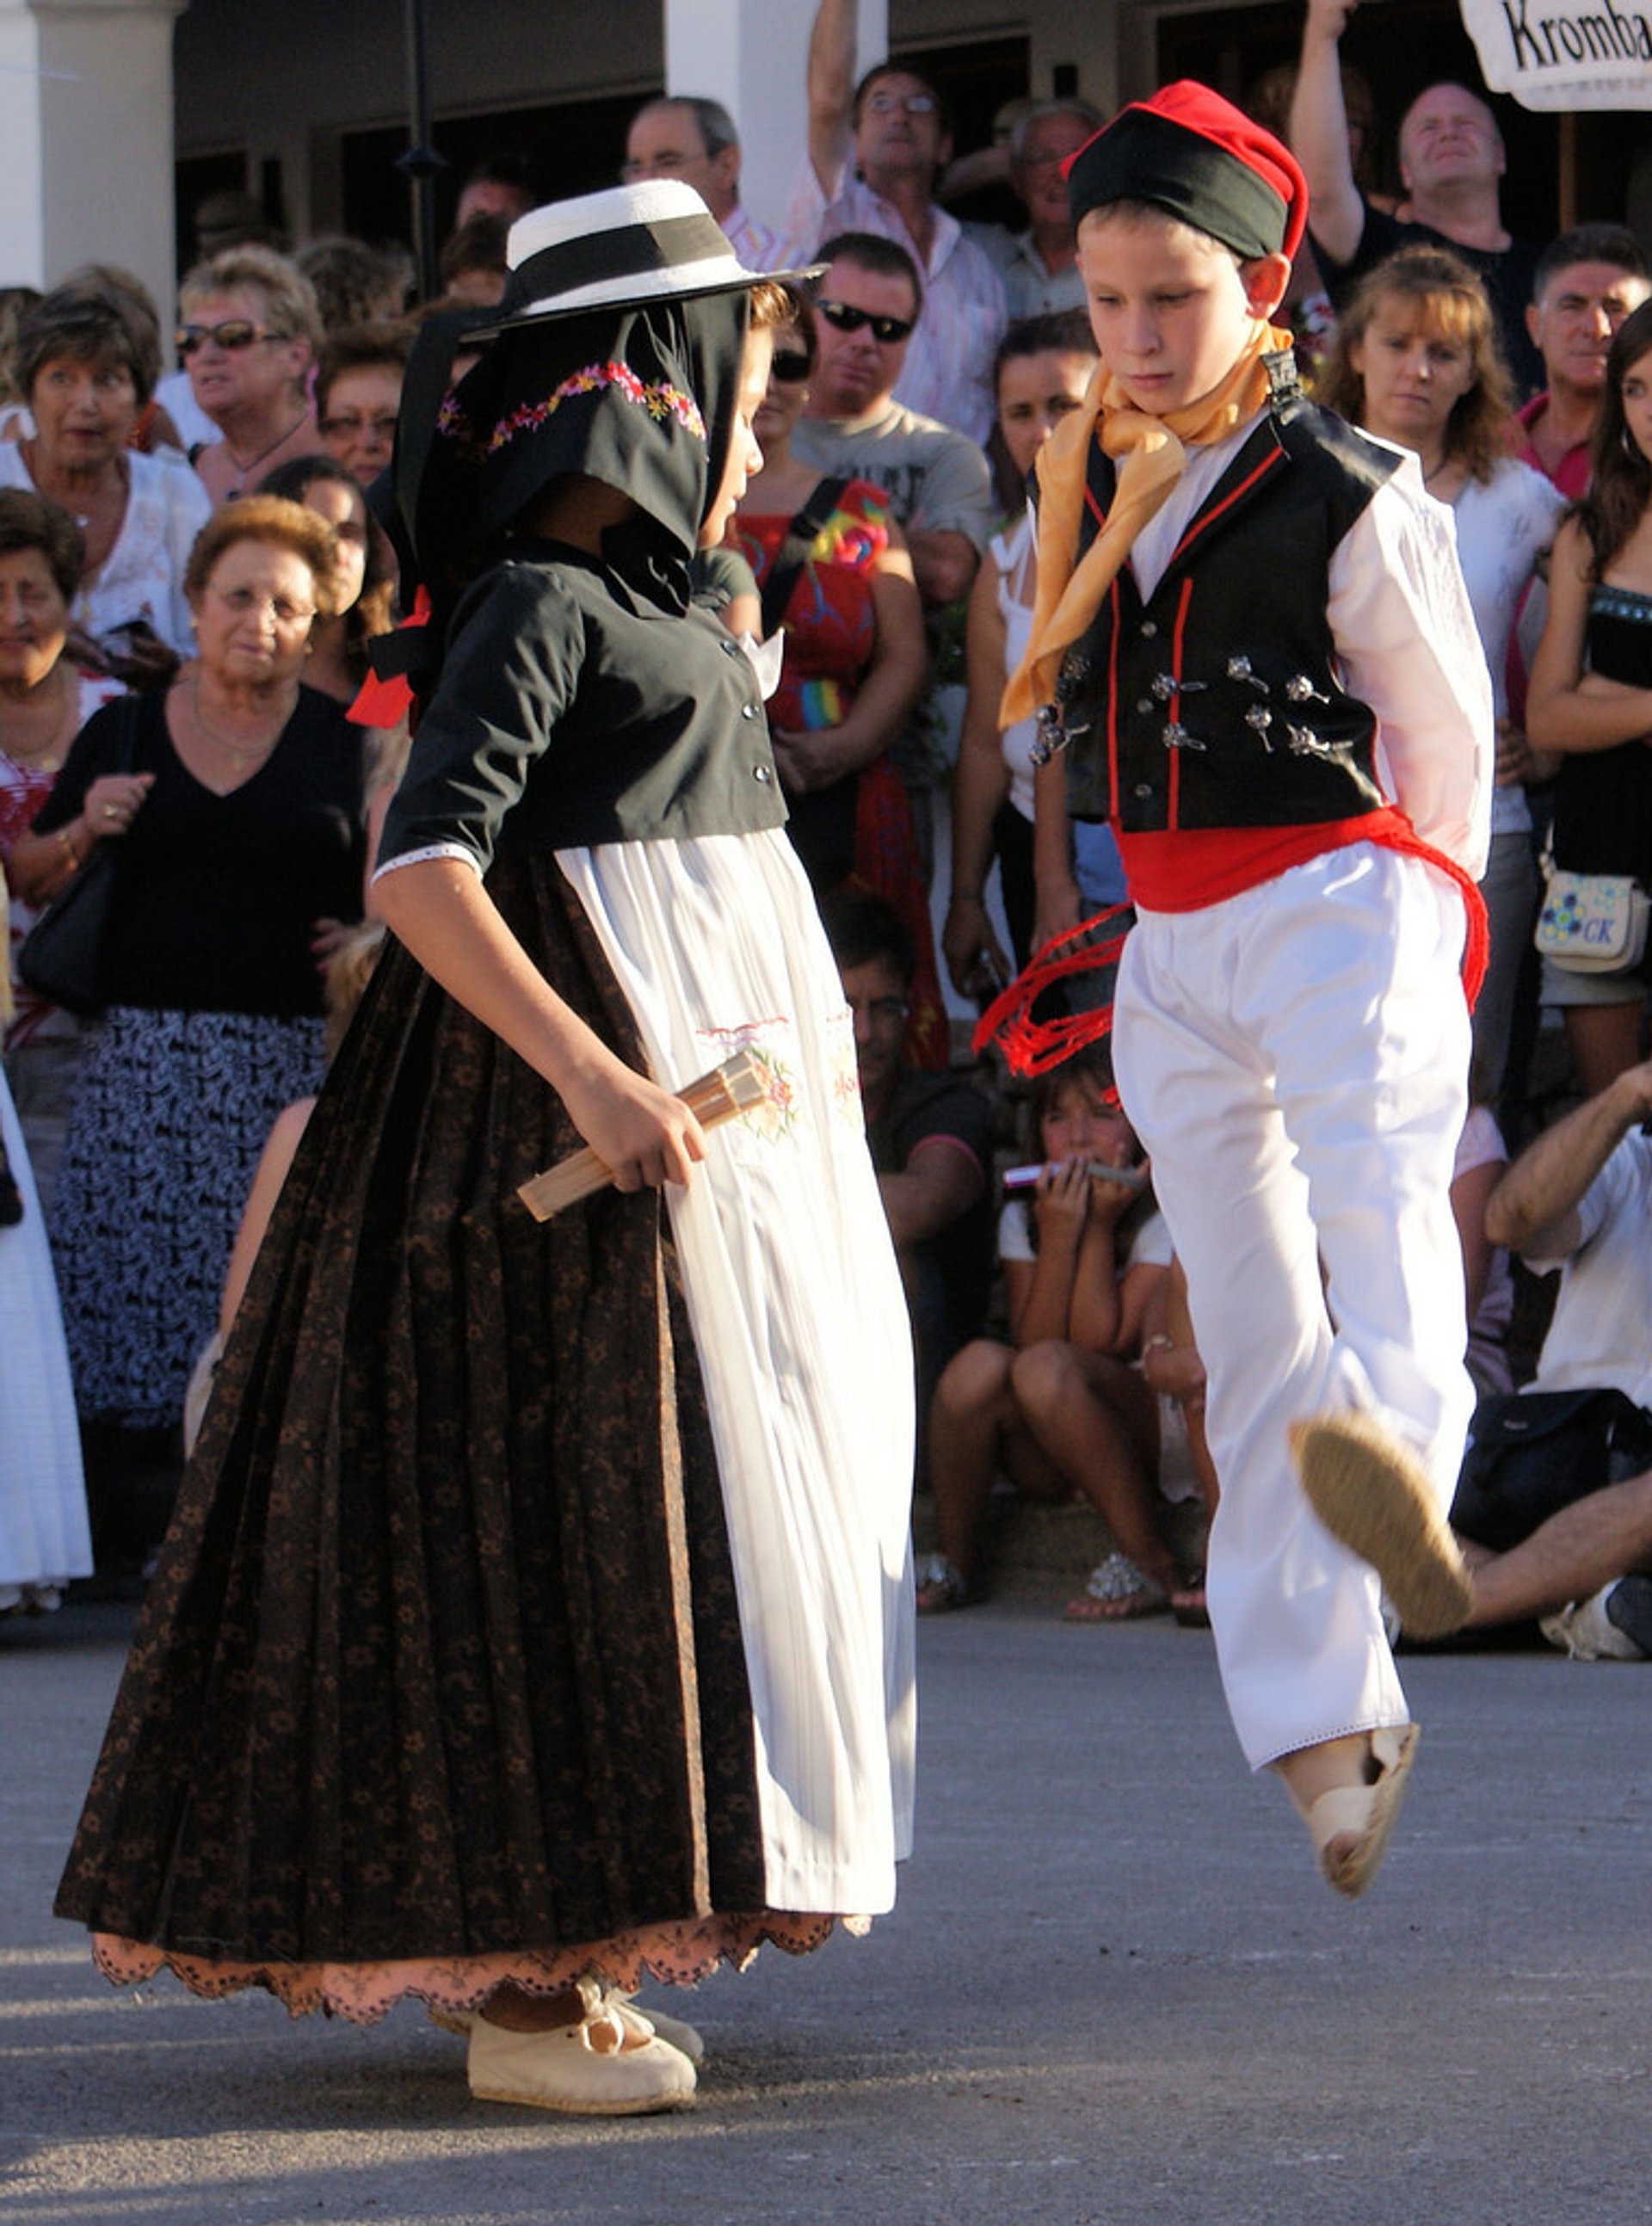 Best time to see Ball Pagès: Traditional Ibizan Folk Dance in Ibiza 2020